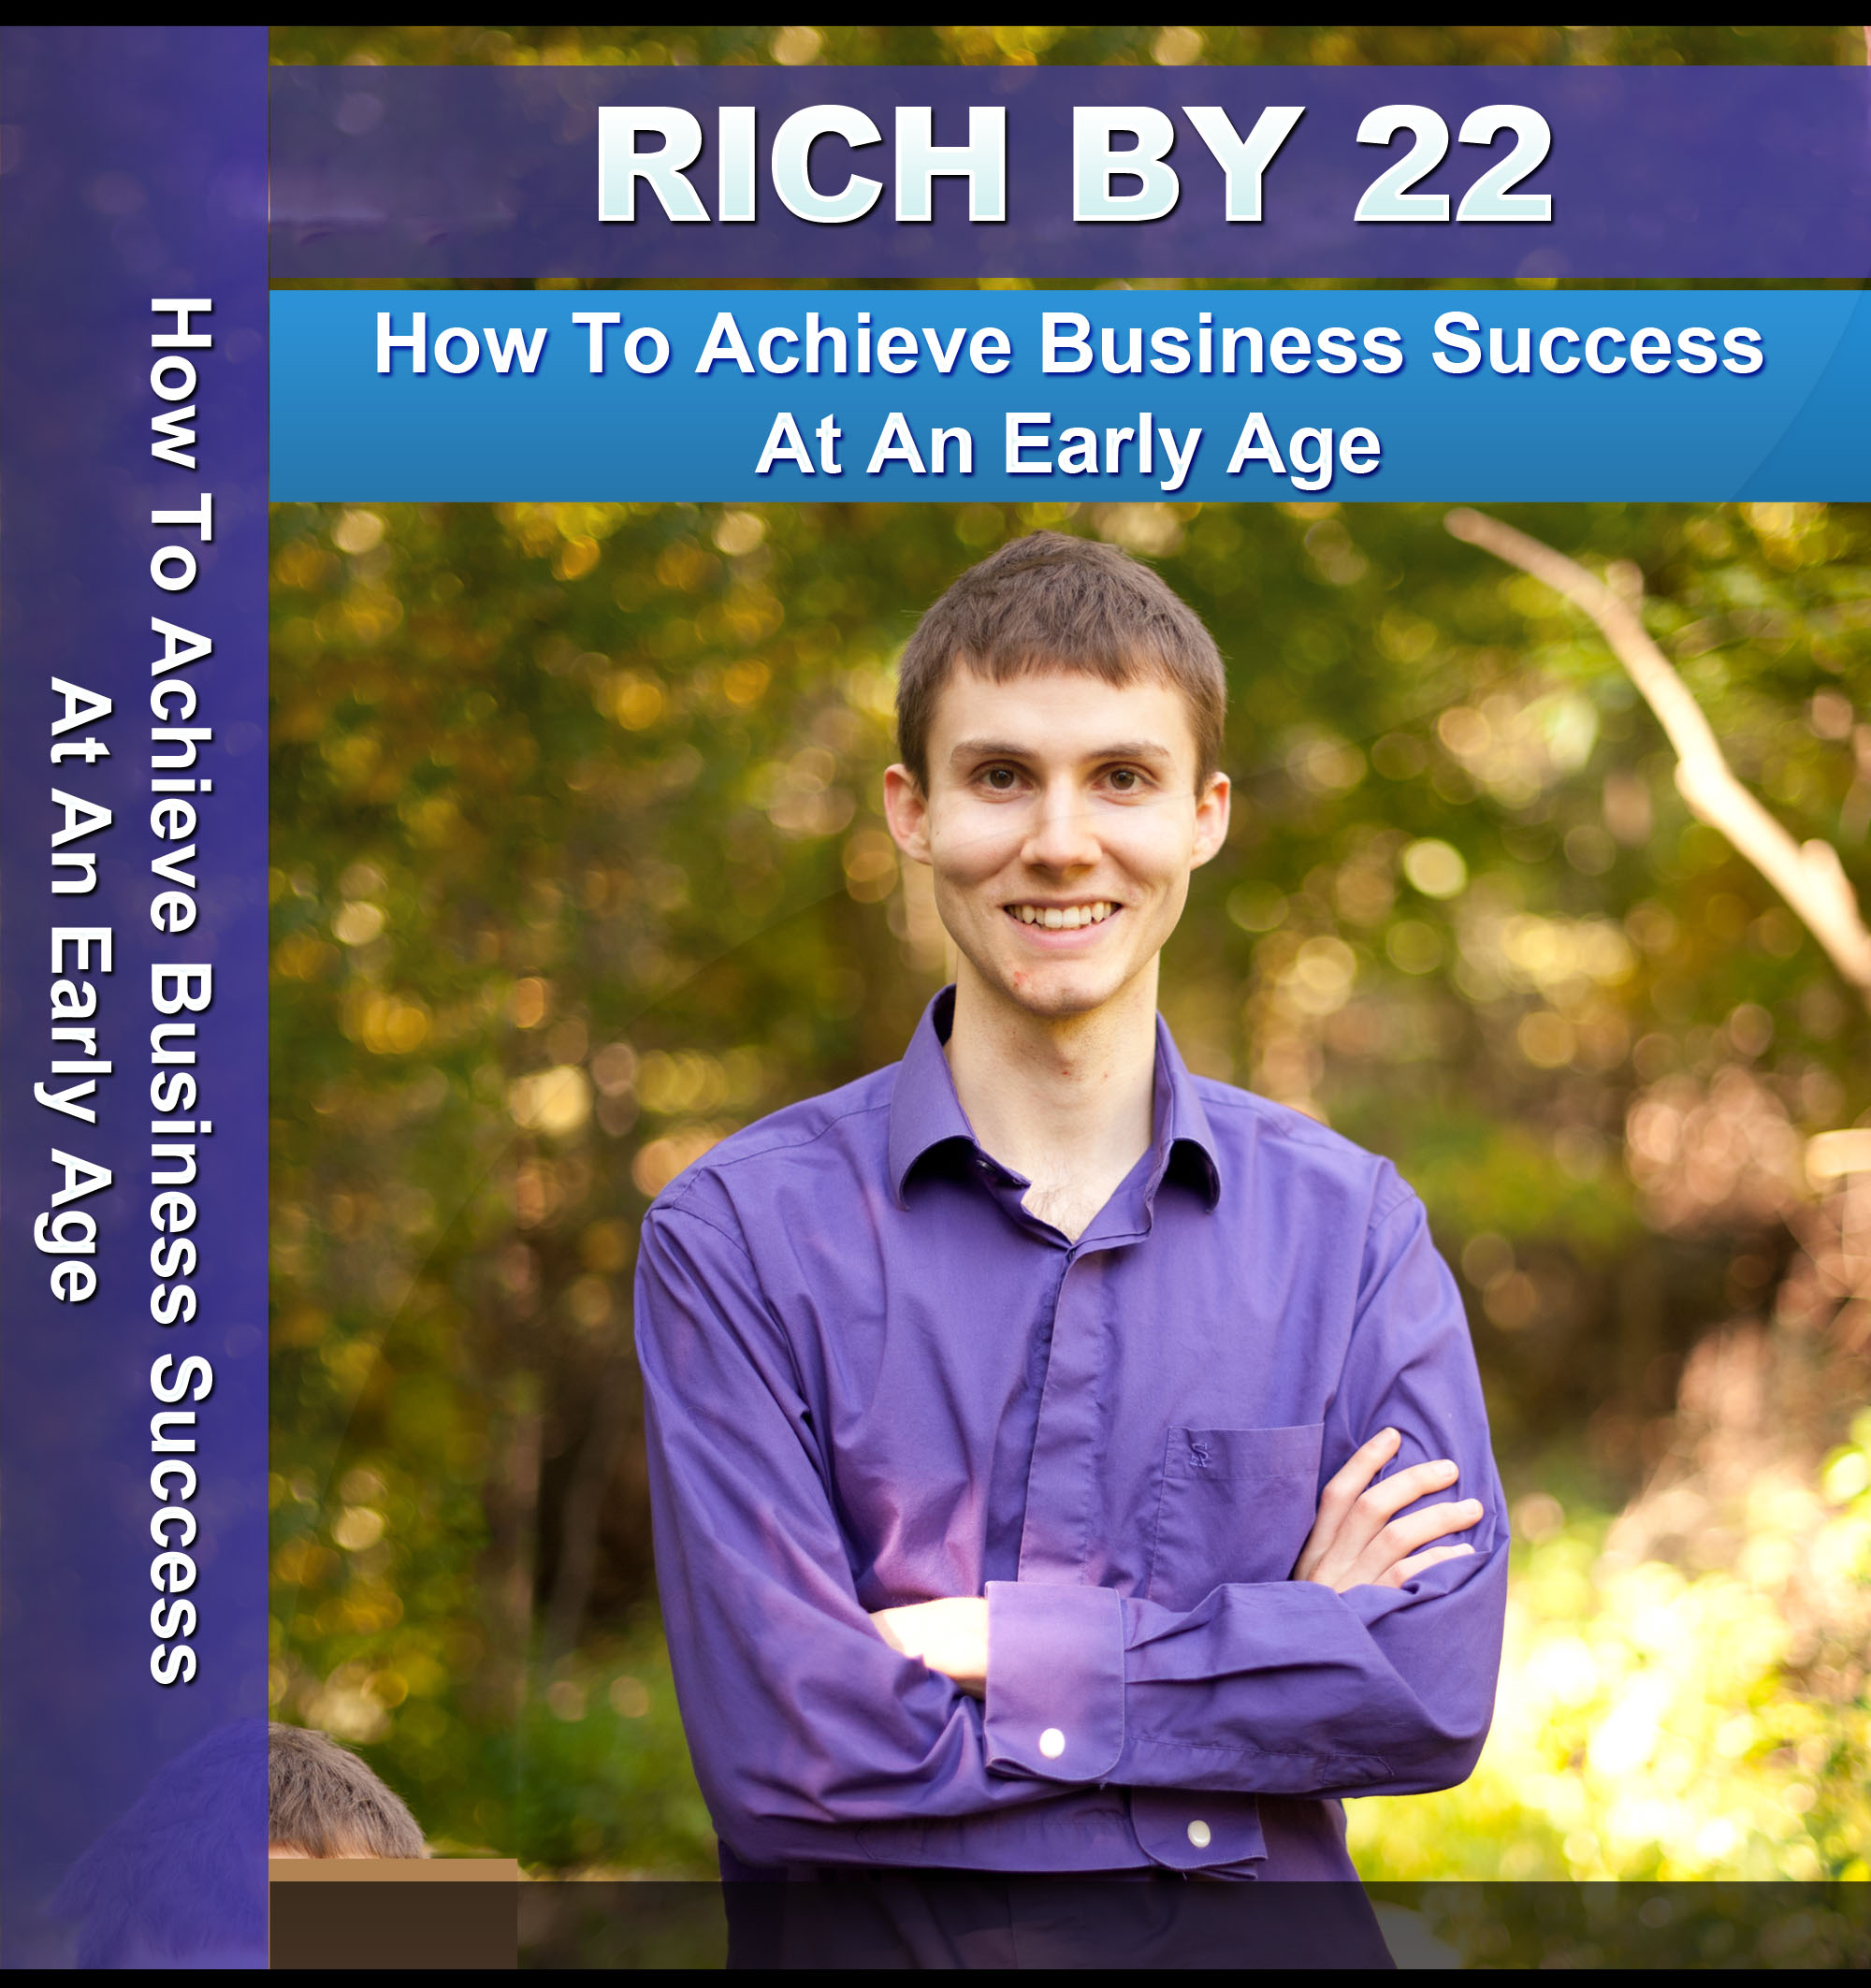 Rich By 22 book cover picture